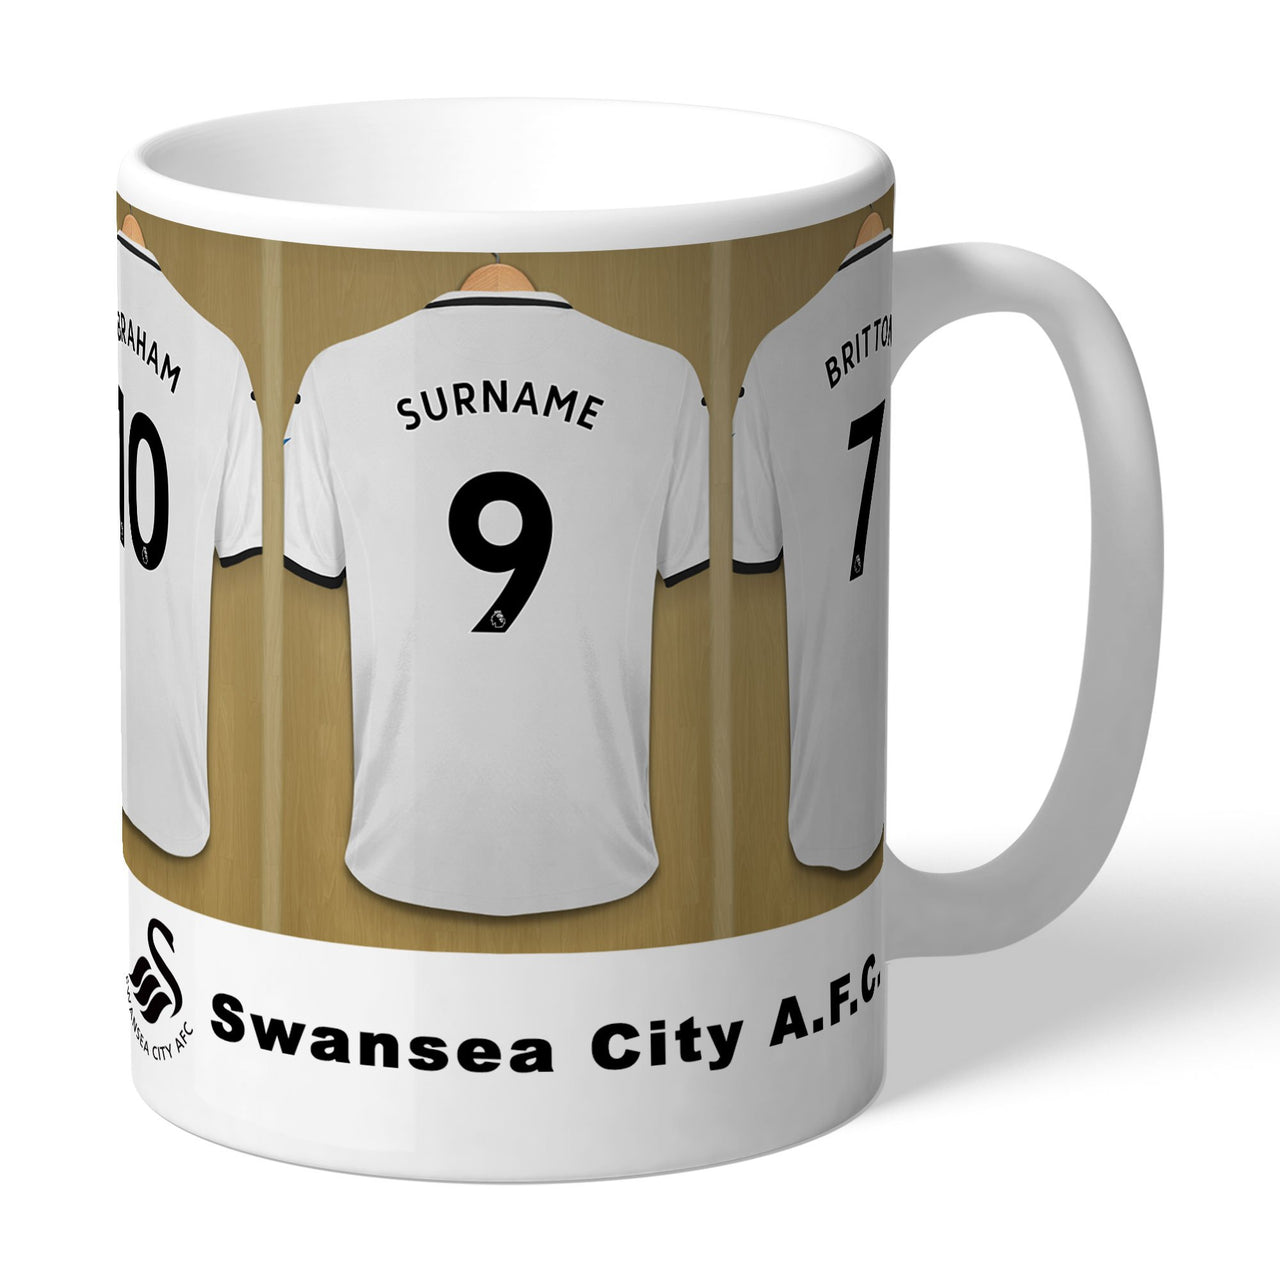 Swansea City AFC Dressing Room Mugs, Gifts